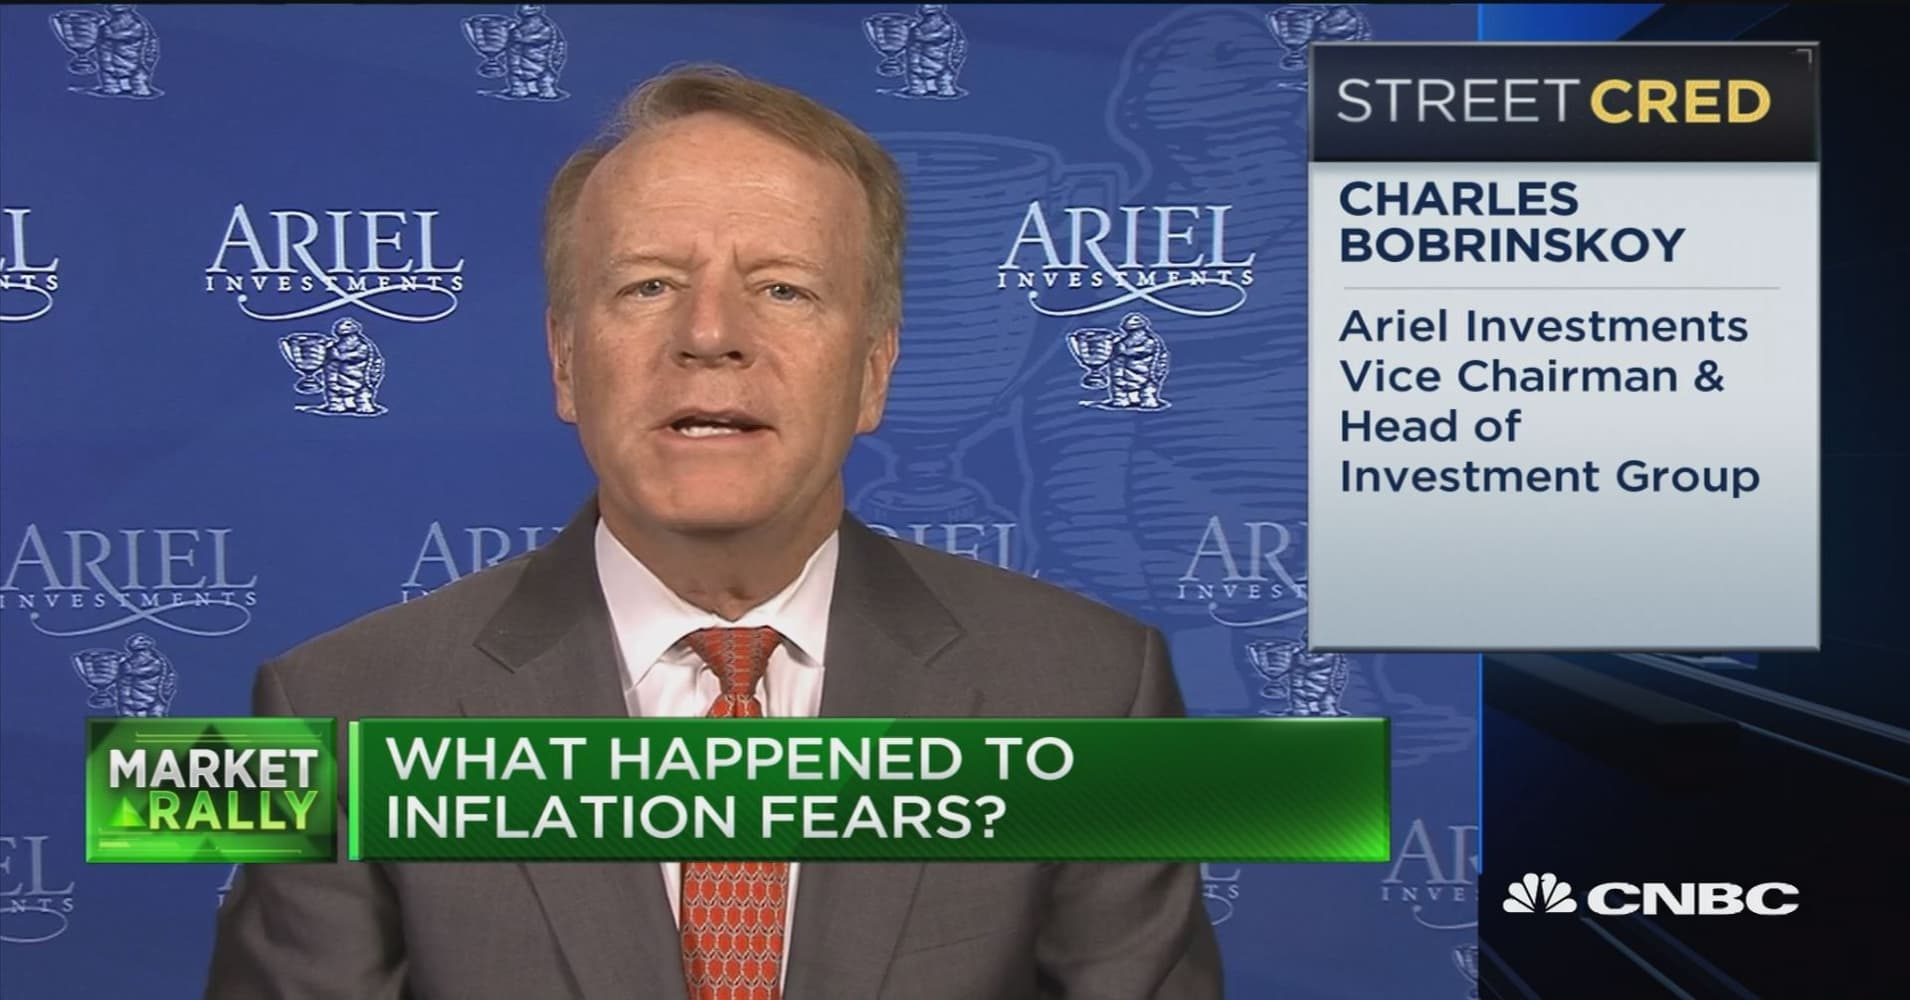 Ariel investments careers